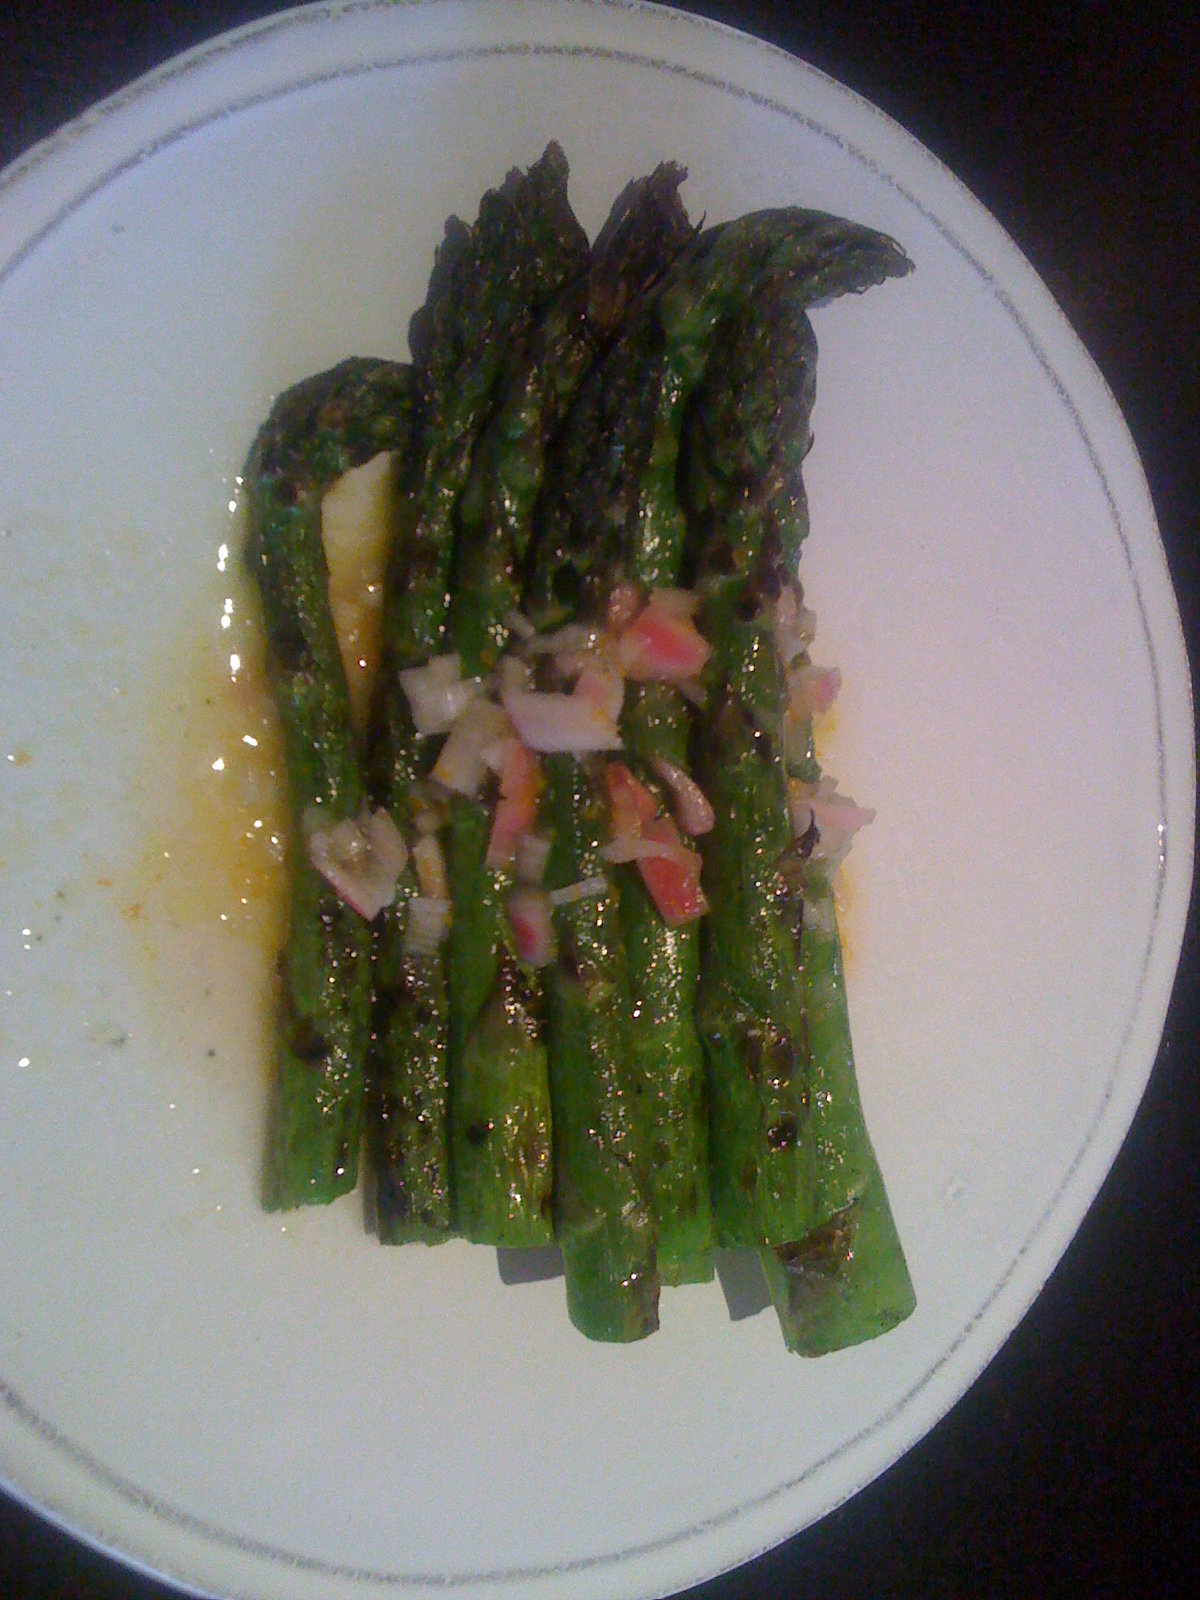 Grilled Green Asparagus with Shallot Vinaigrette recipe on Food52.com